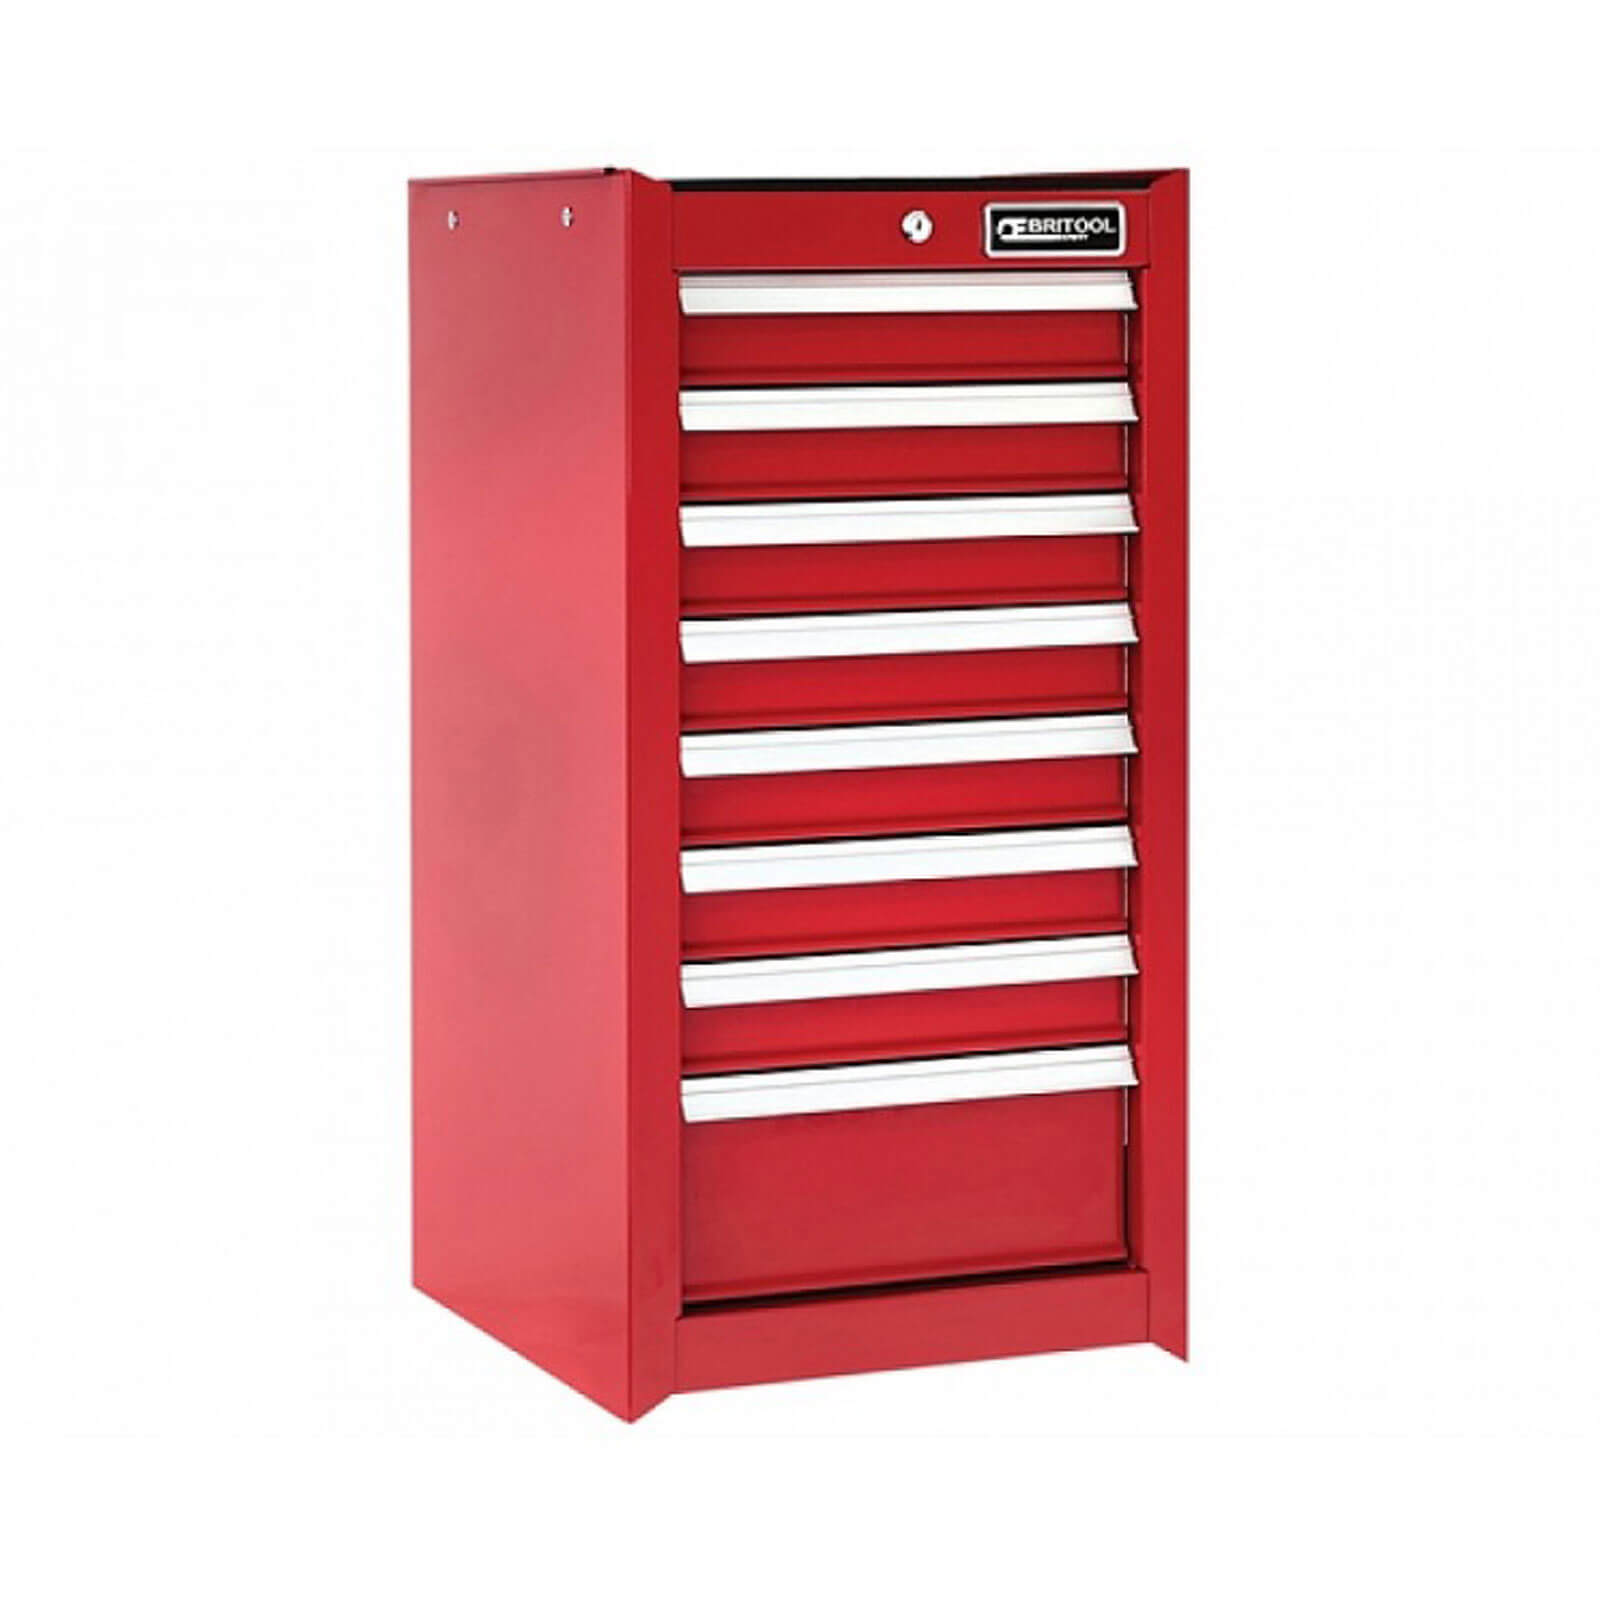 Image of Britool 8 Drawer Tool Cabinet Red